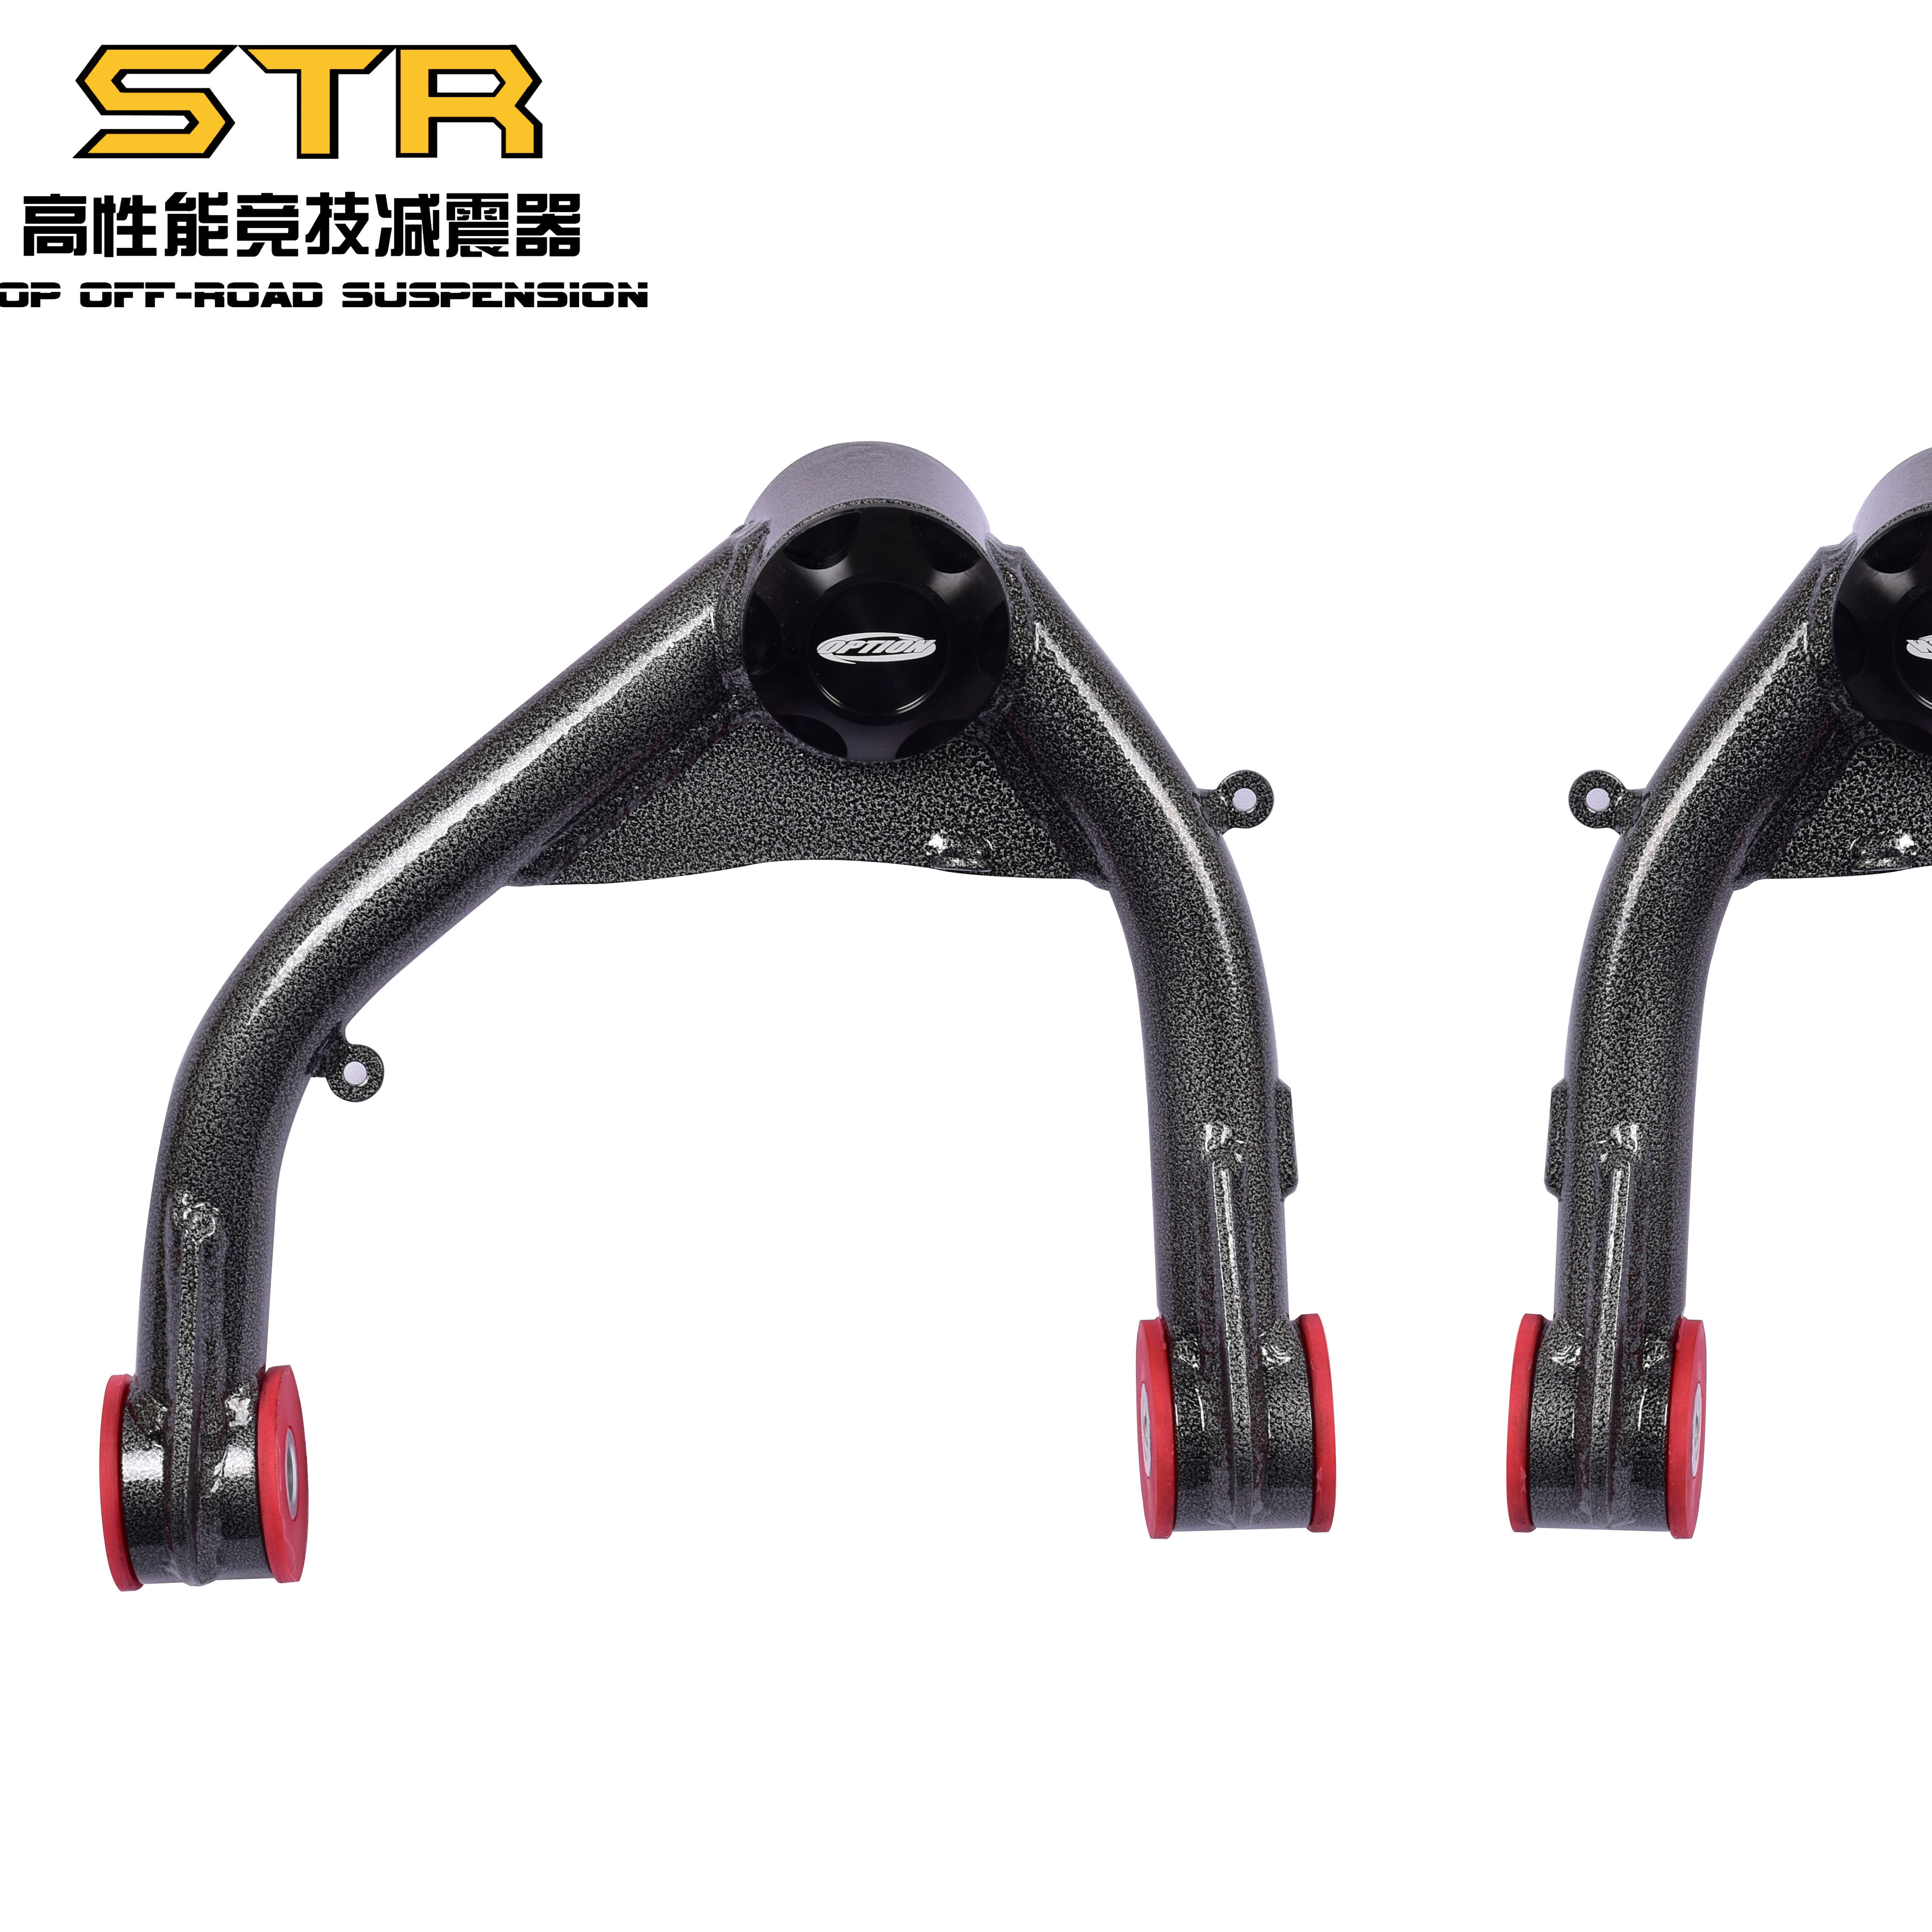 Off road Suspension lower 4x4 upper control arm for tacoma and land cruiser 120